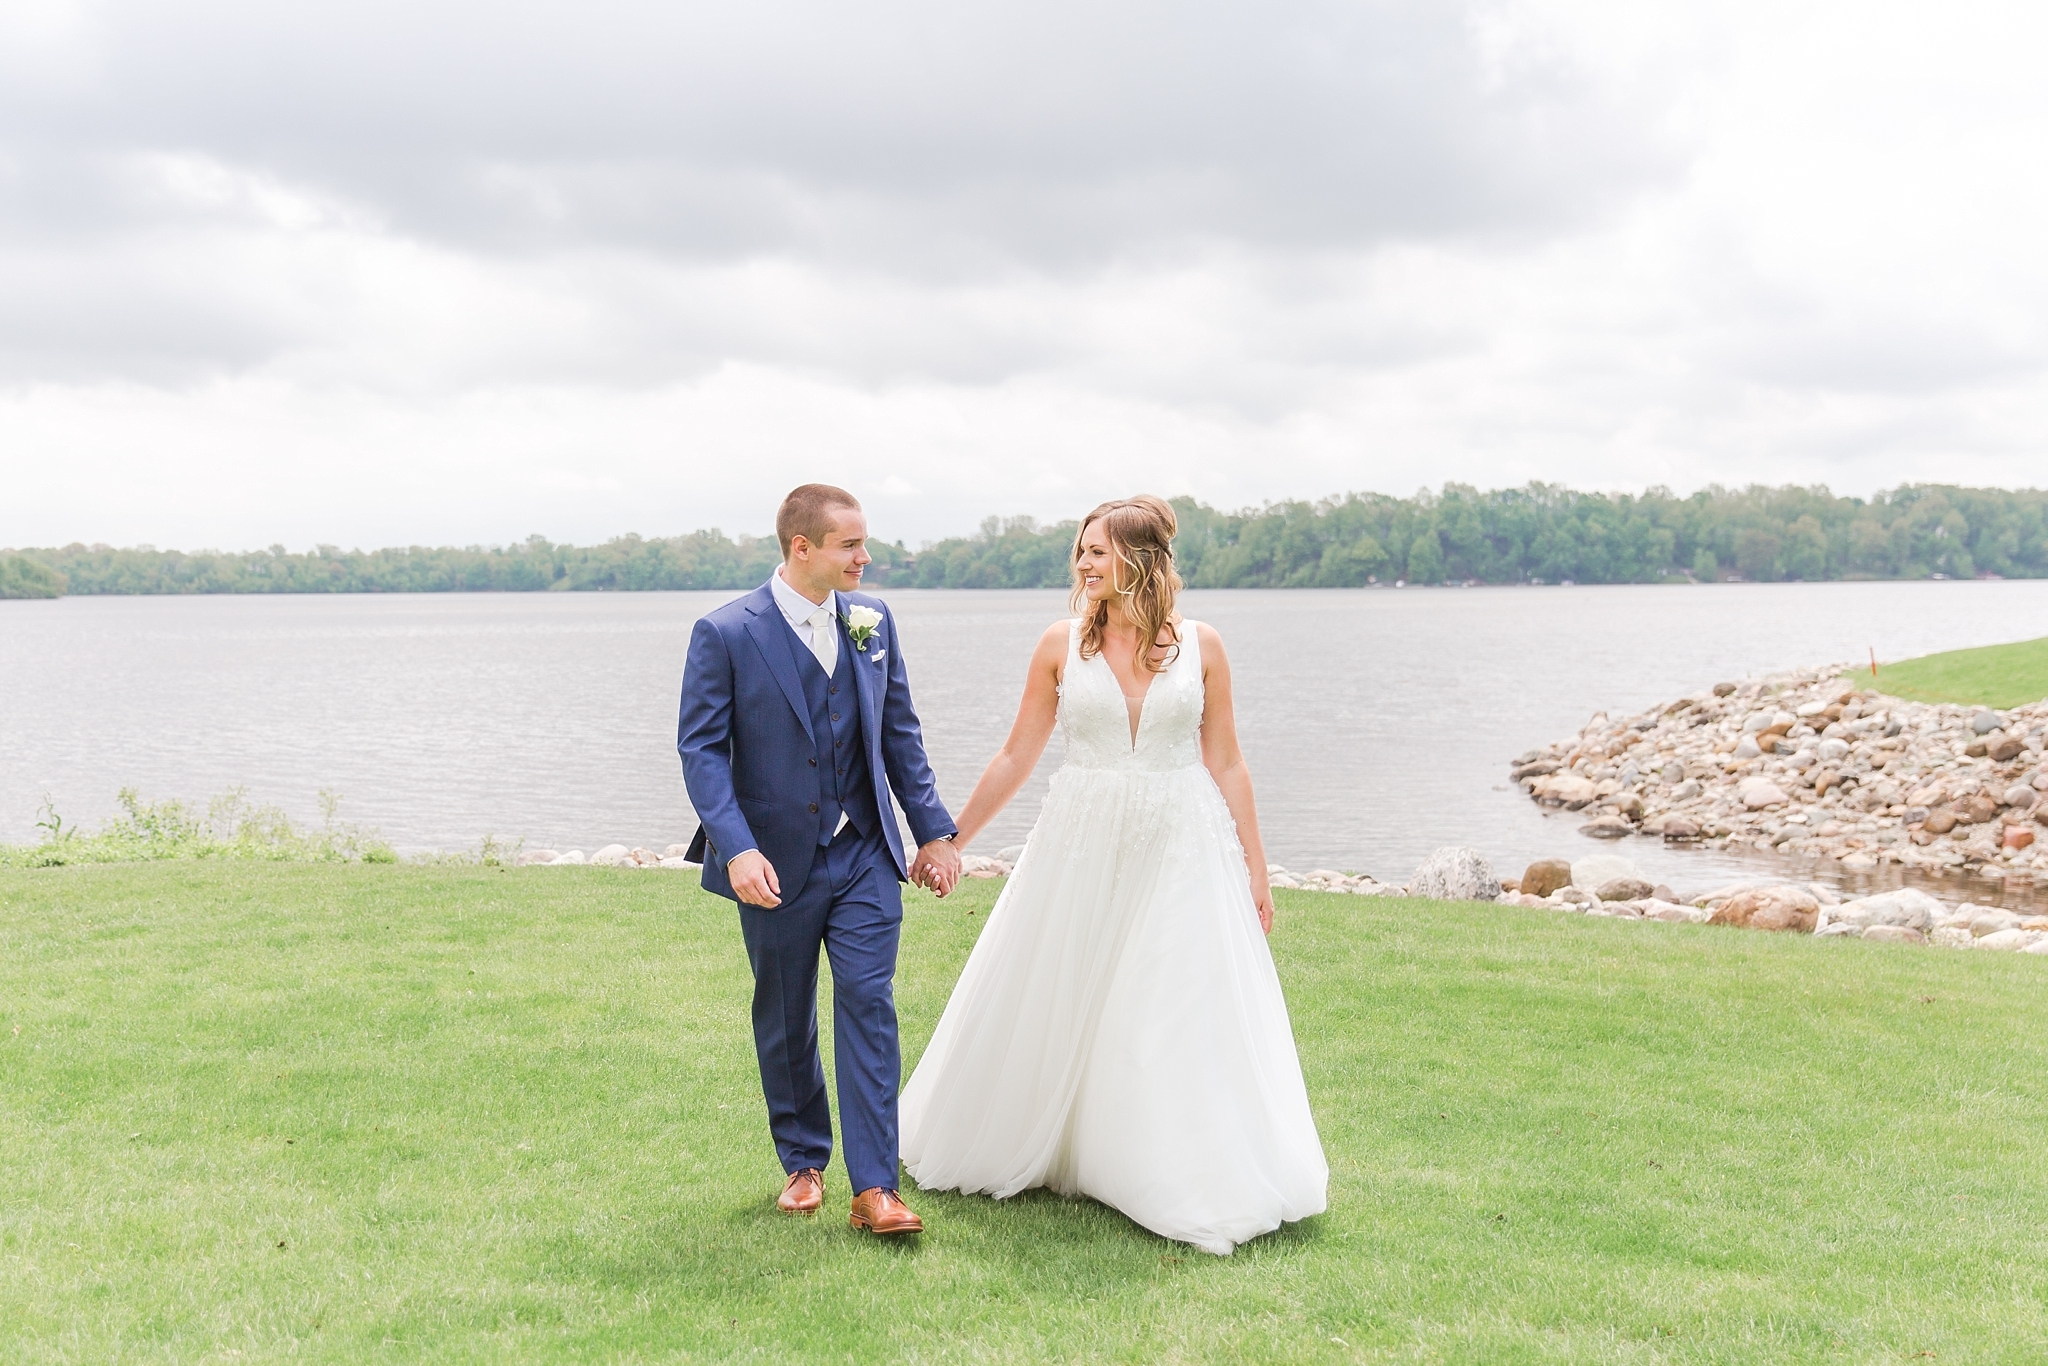 joyful-candid-laid-back-wedding-photos-in-ann-arbor-michigan-and-at-the-eagle-crest-golf-resort-by-courtney-carolyn-photography_0027.jpg